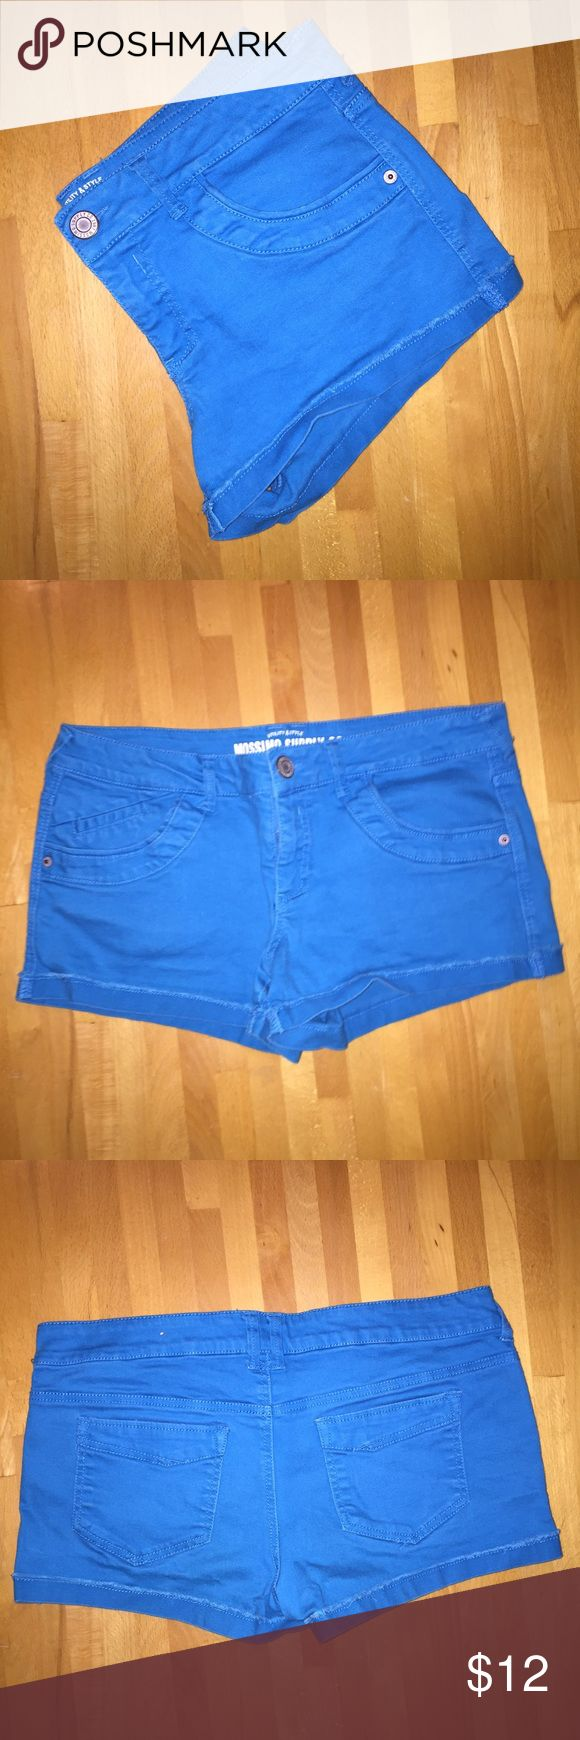 Cyan Shorts These bright blue shorts are super comfy thanks to the cotton + spandex makeup. Actually size 13 but run small and apparently Poshmark doesn't have size 13 as an option Mossimo Supply Co. Shorts Jean Shorts